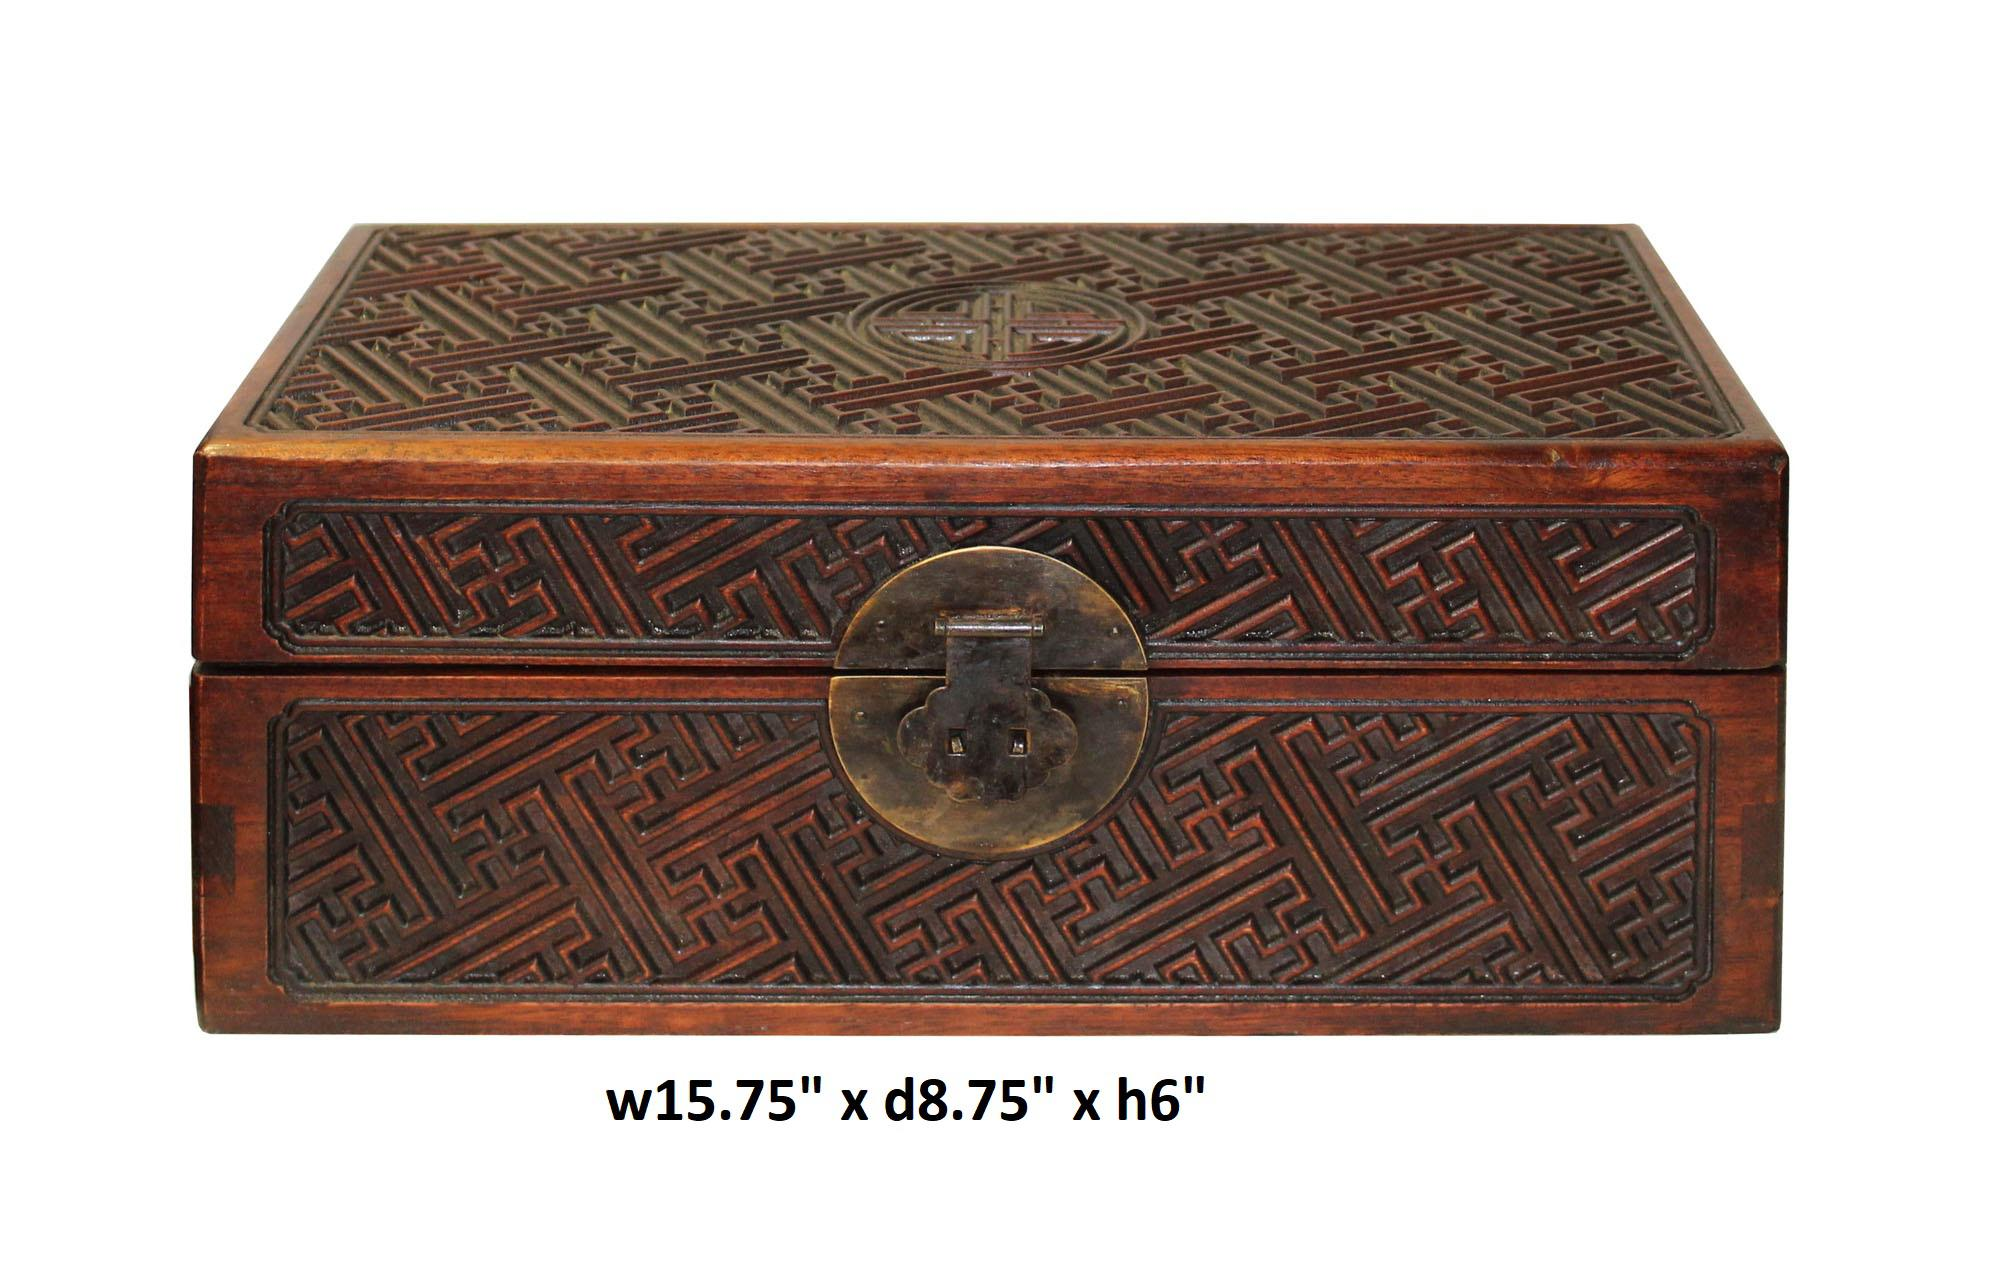 Chinese Storage Box #12   Chinese Brown Dimensional Relief Geometric Motif  Rectangular Storage Box Chest ...